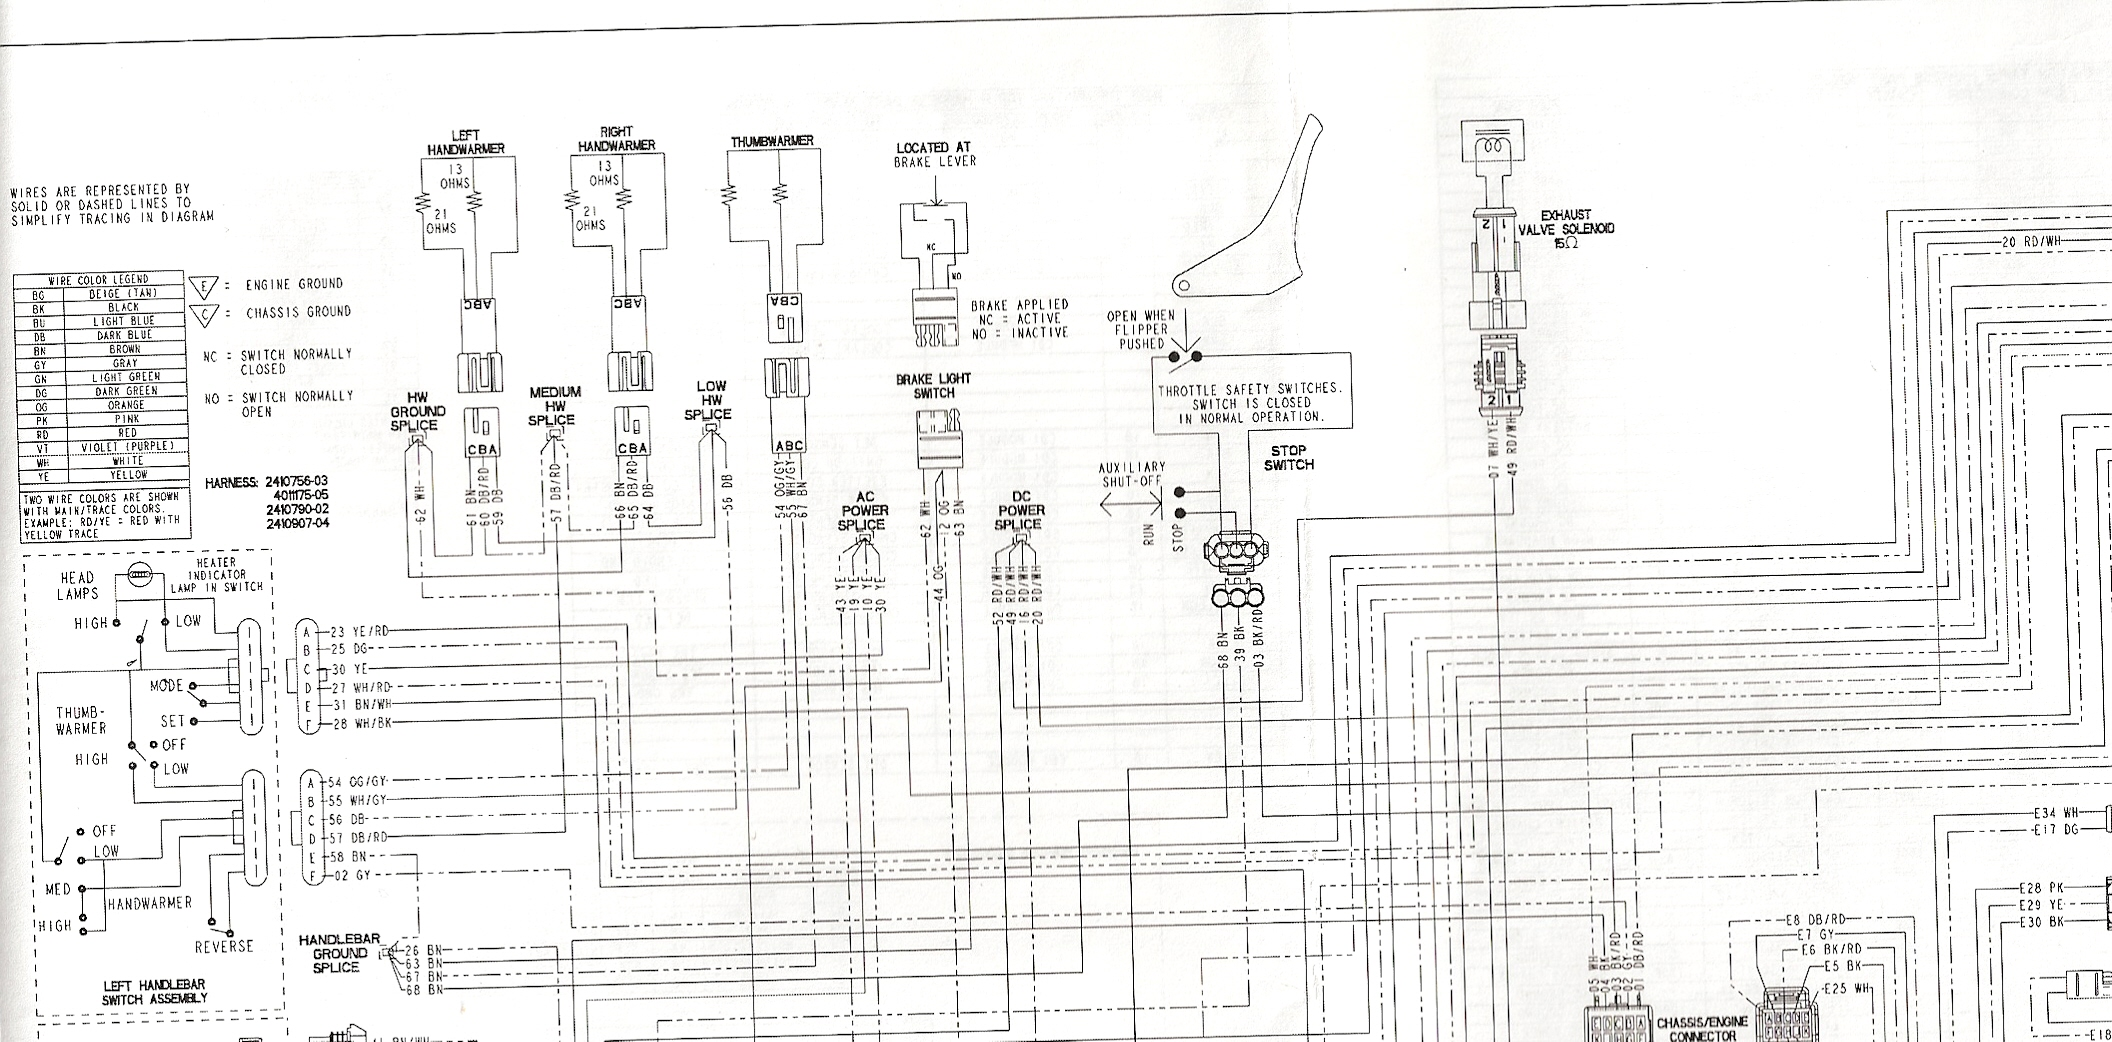 illustrates the 2010 polaris atv sportsman 800 wiring diagram rh msblog co 2004 Polaris Sportsman 500 Wiring Diagram 2004 Polaris Sportsman 500 Wiring Diagram